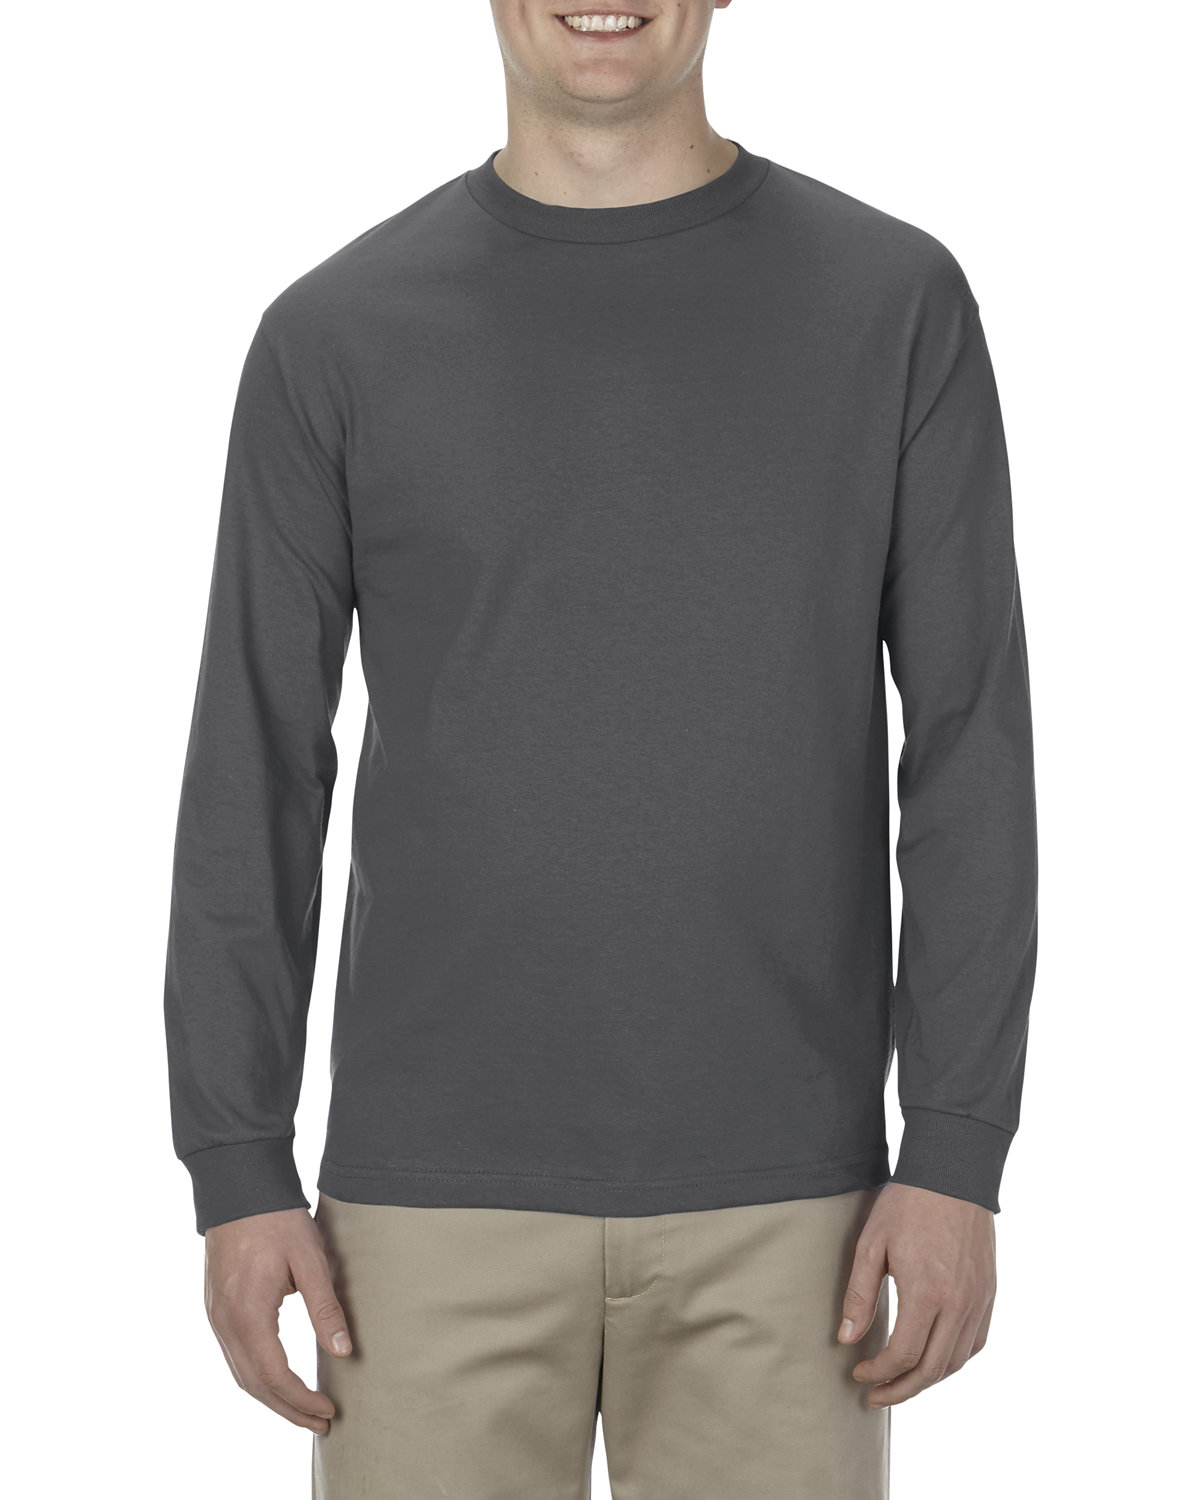 Alstyle Adult 6.0 oz., 100% Cotton Long-Sleeve T-Shirt CHARCOAL HEATHER